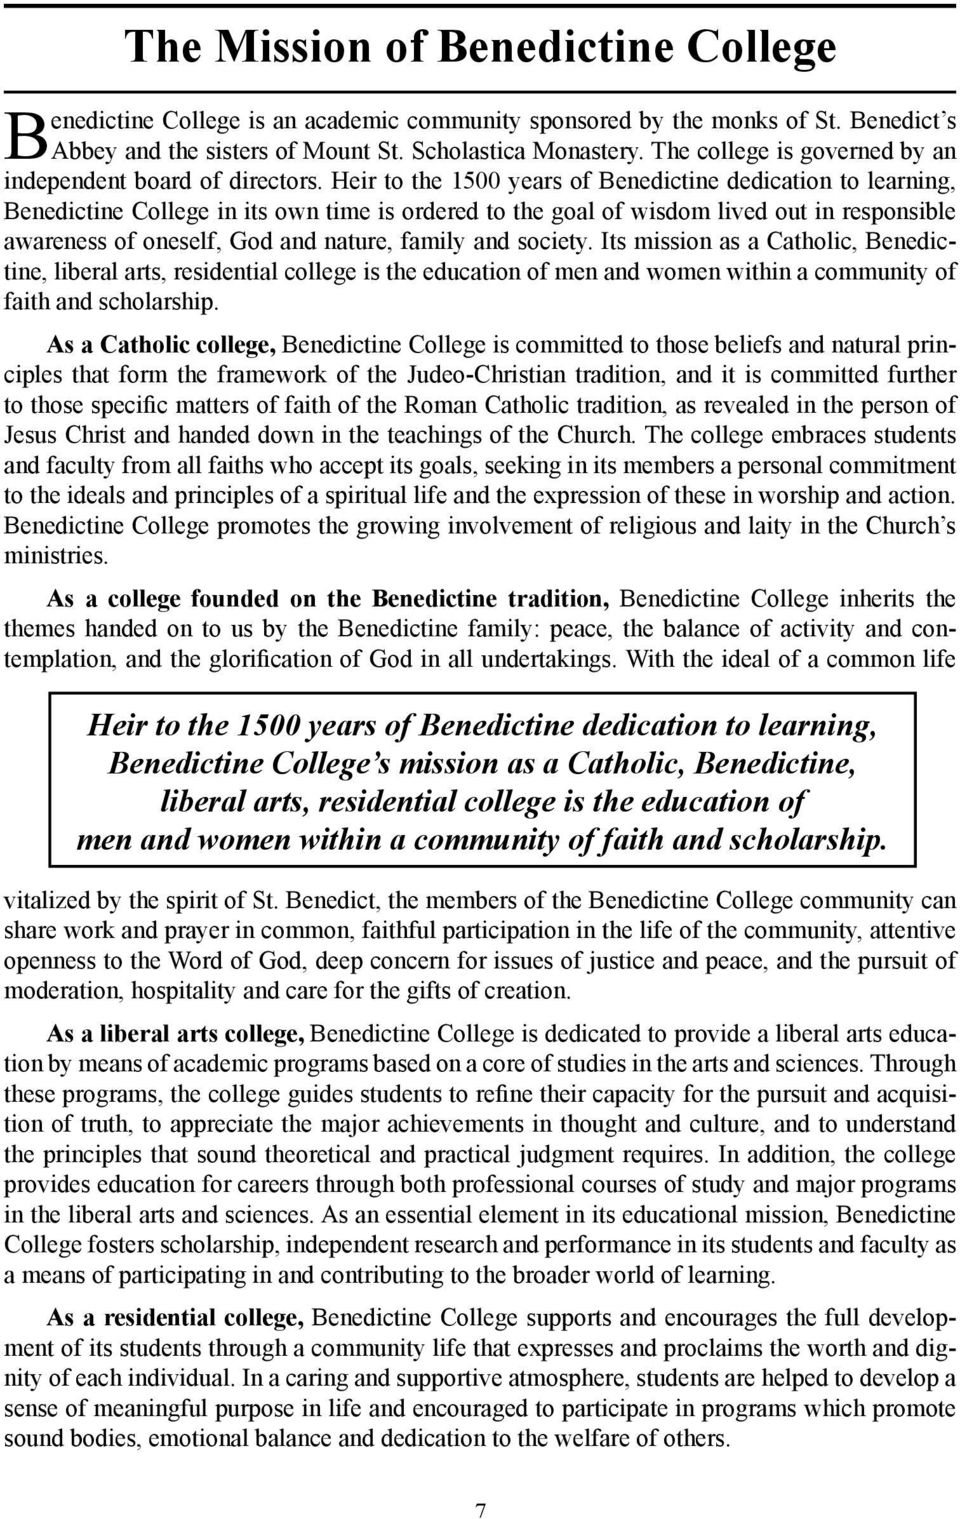 Heir to the 1500 years of Benedictine dedication to learning, Benedictine College in its own time is ordered to the goal of wisdom lived out in responsible awareness of oneself, God and nature,